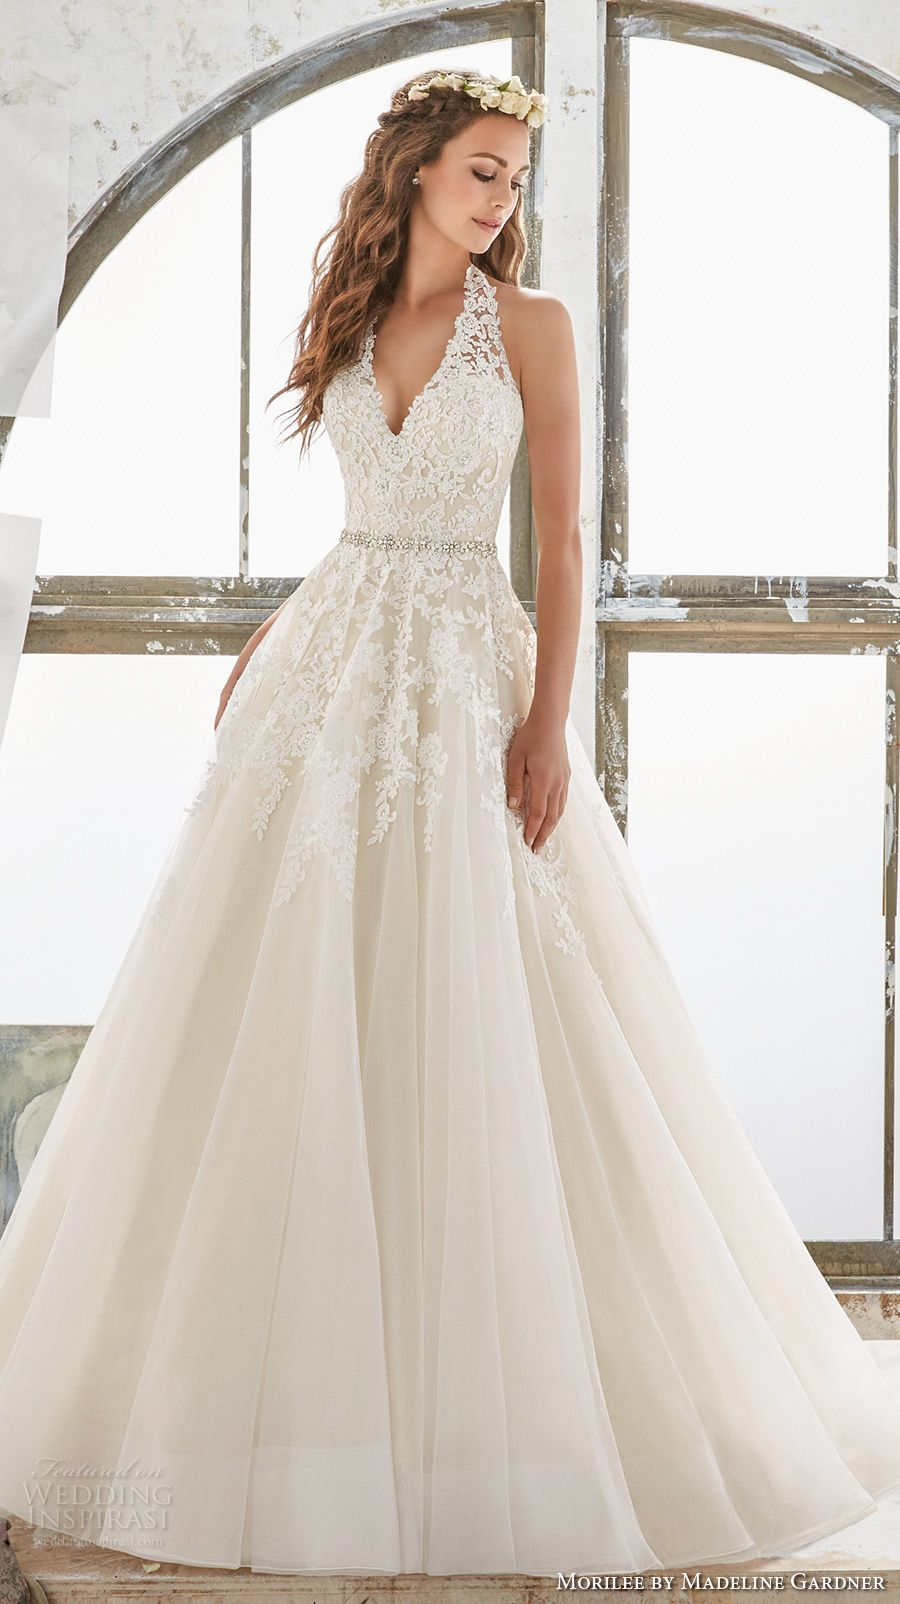 Morilee by madeline gardner spring 2017 wedding dresses blu morilee spring 2017 bridal sleeveless halter v neck heavily embellished bodice romantic a line wedding dress open low back chapel train 5513 mv junglespirit Images